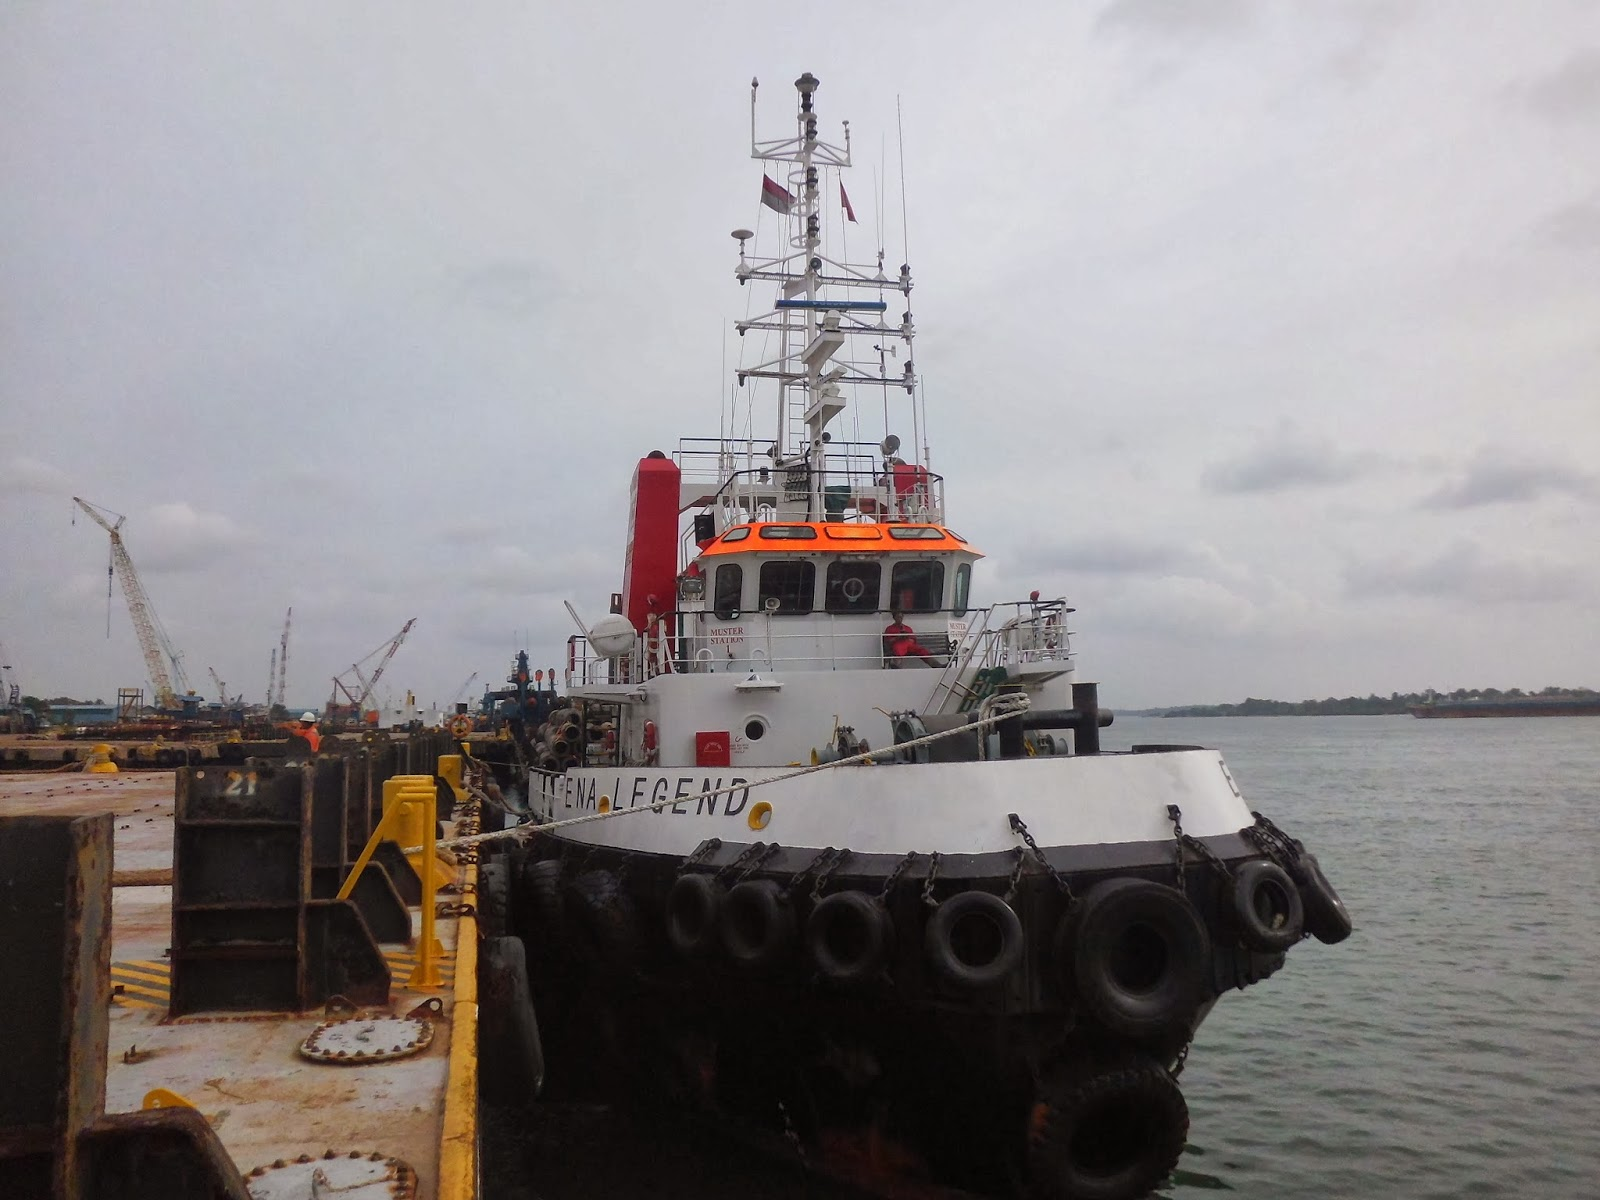 Bunker Survey Tug Boat ENA LEGEND